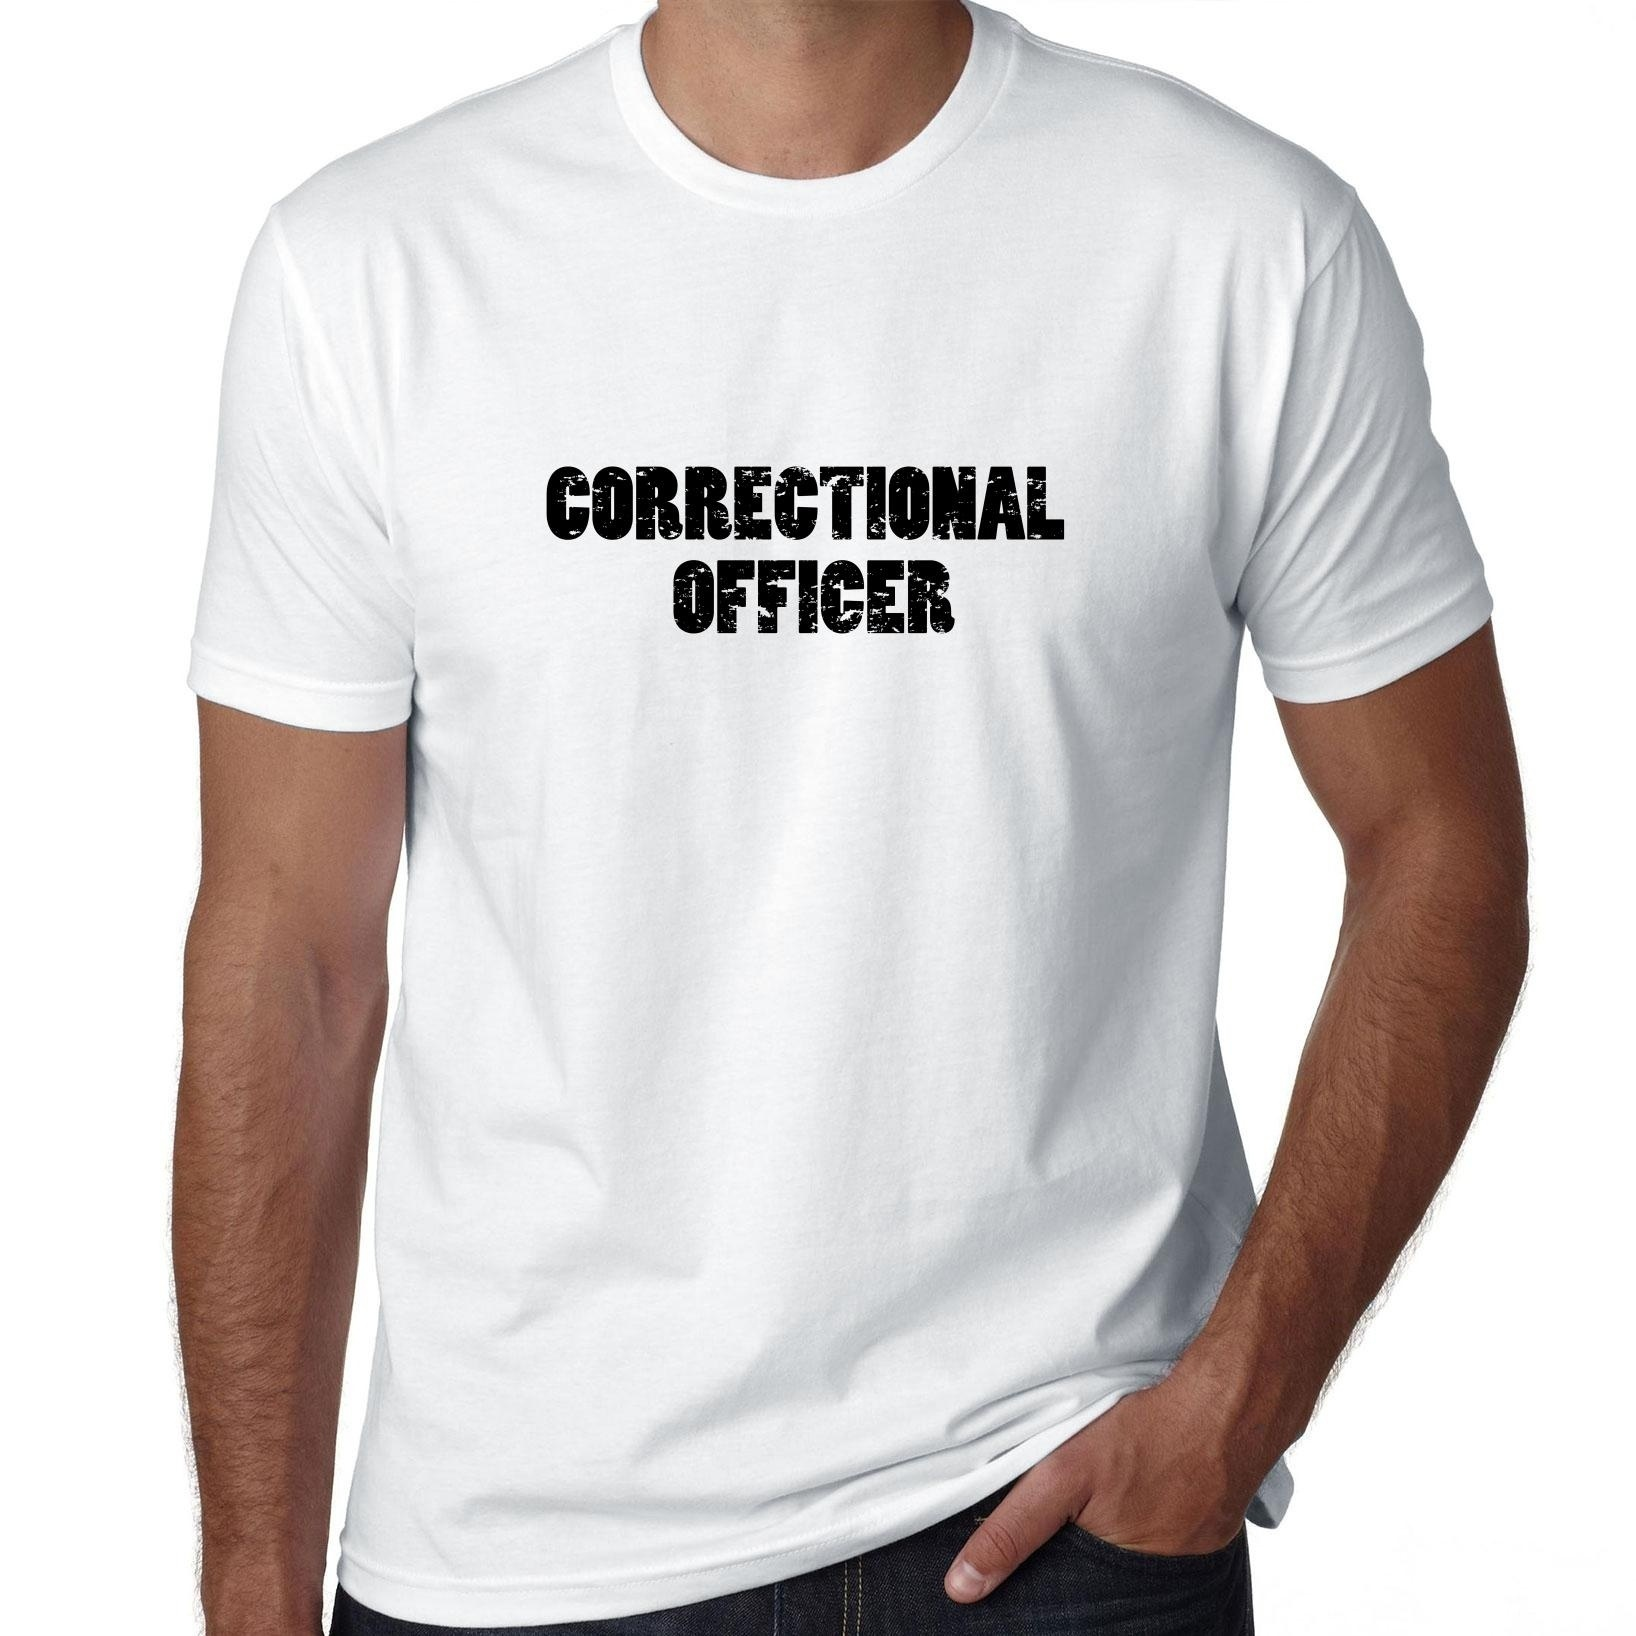 f30f1a75 Qoo10 - Correctional Officer - Law Enforcement Support Men s T-Shirt ...